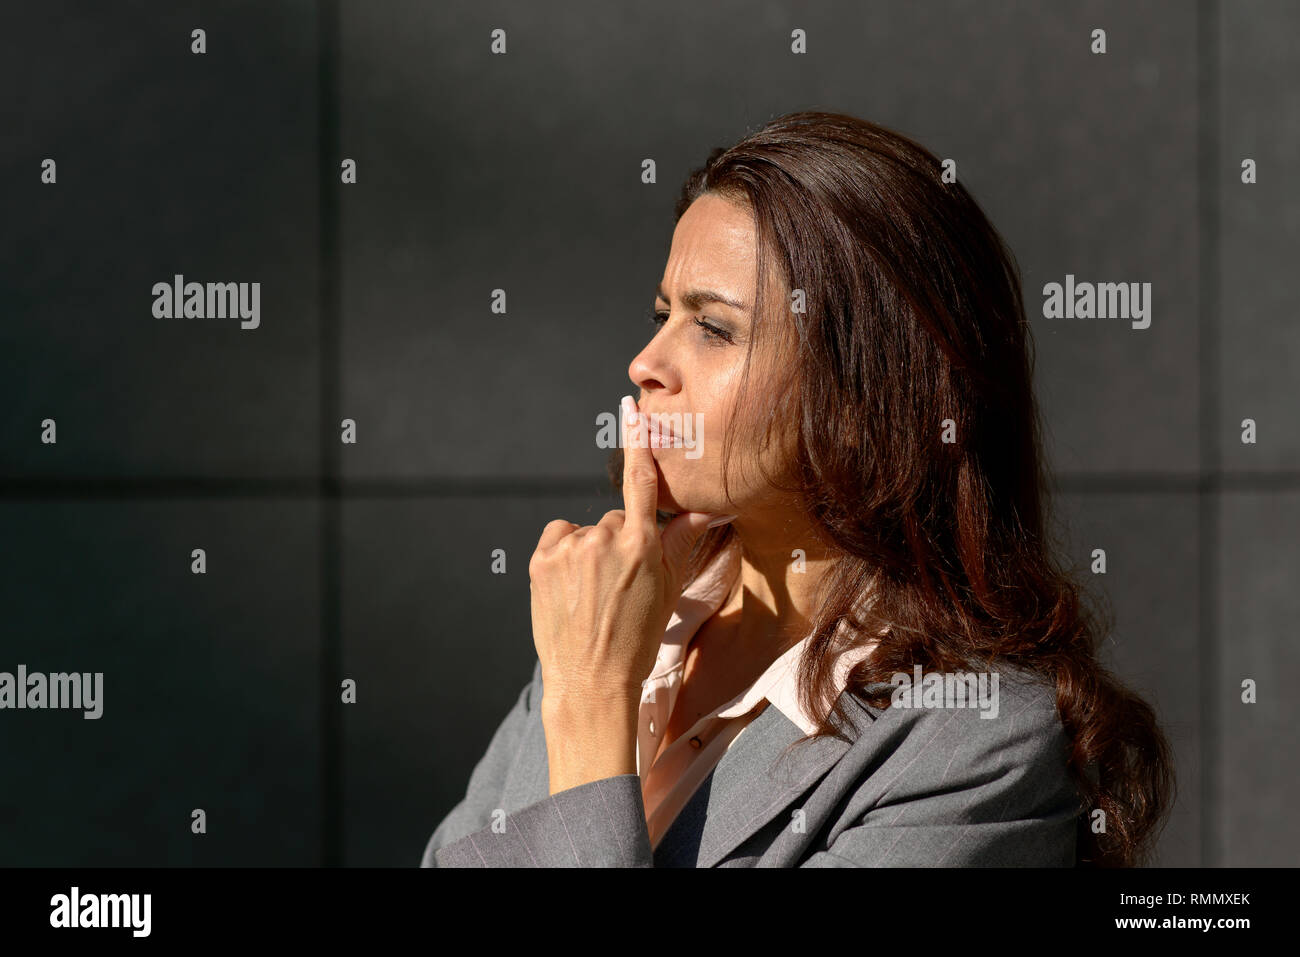 Thoughtful woman standing musing a problem with her finger to her lips in a profile view outdoors with copy space - Stock Image